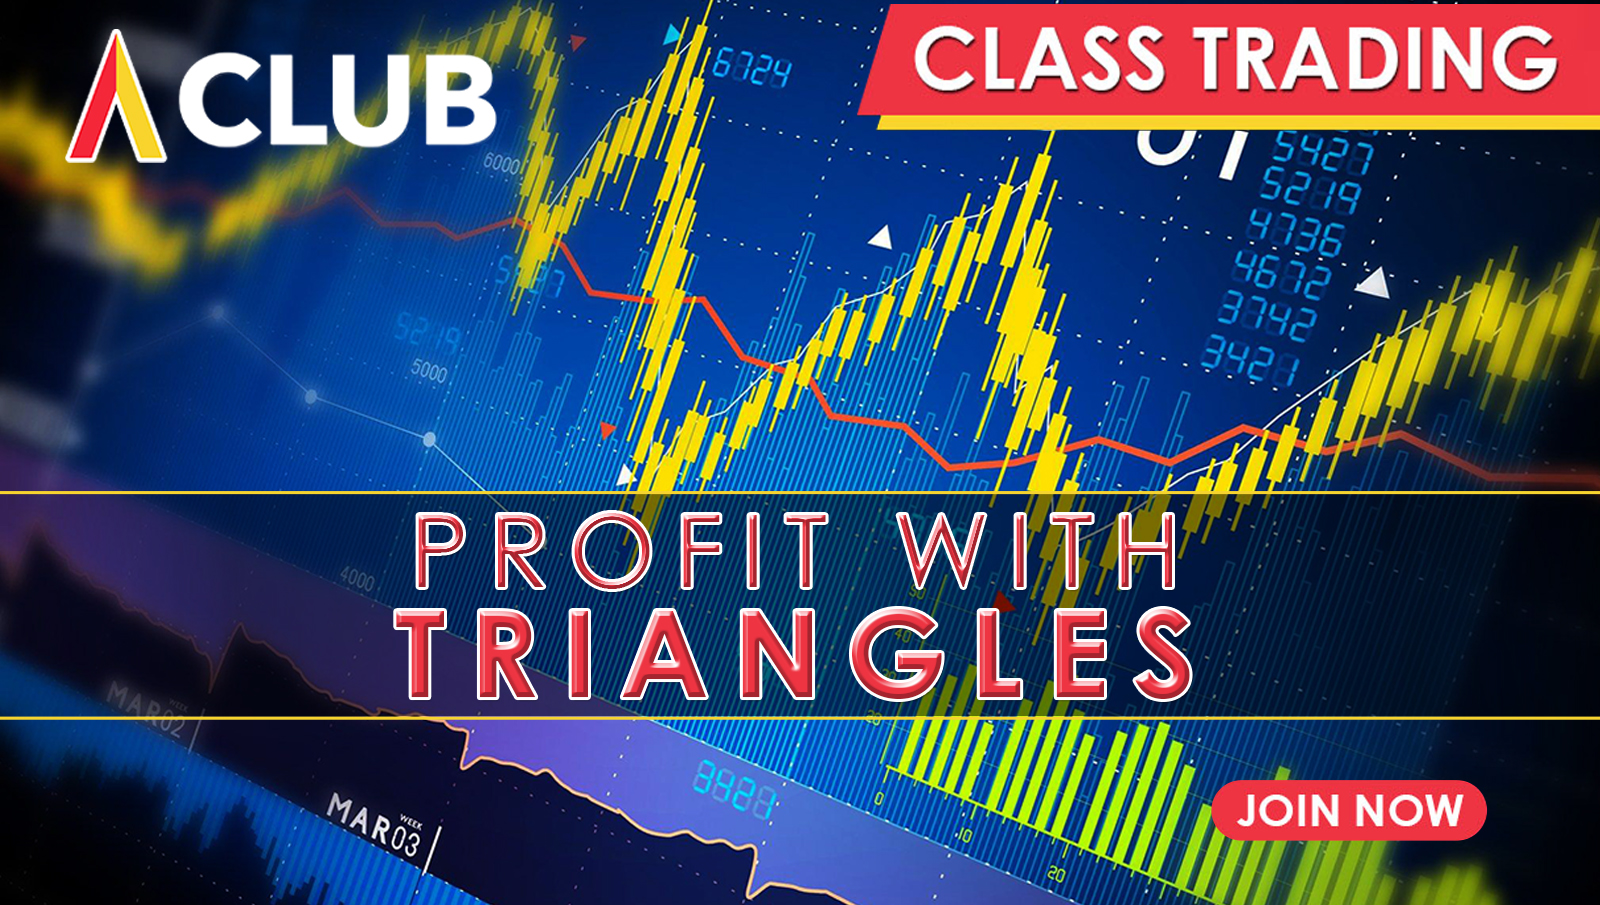 PROFIT WITH TRIANGLES